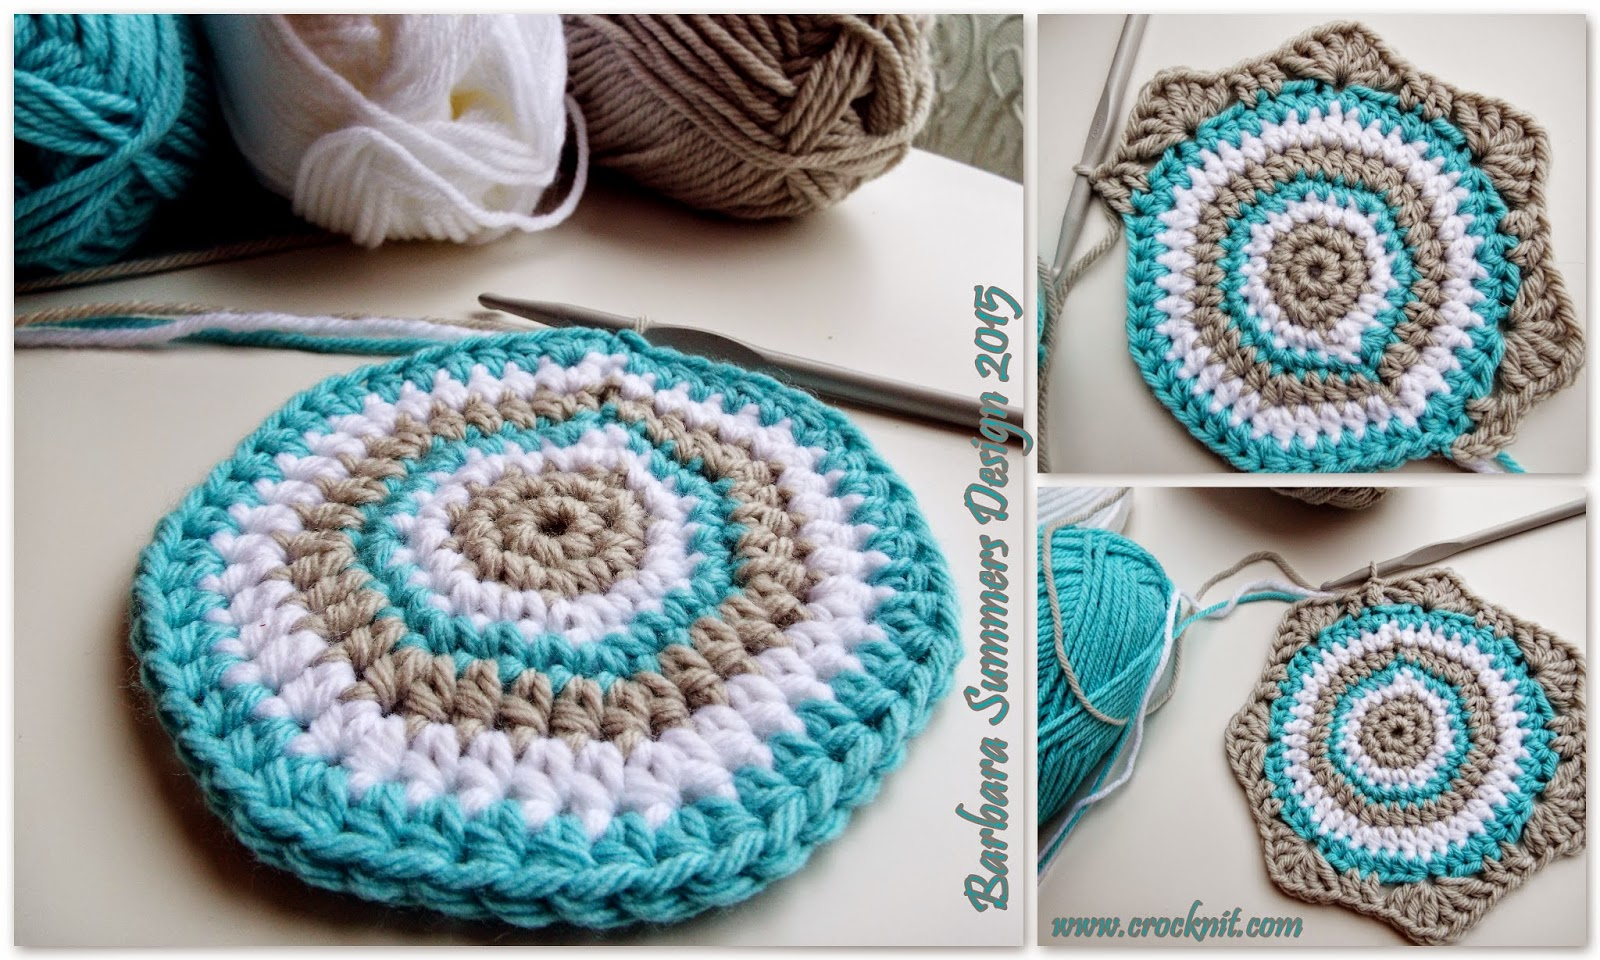 crochet bag, round bag, drawstring bag,  free pattern, fans, posts, how to crohet